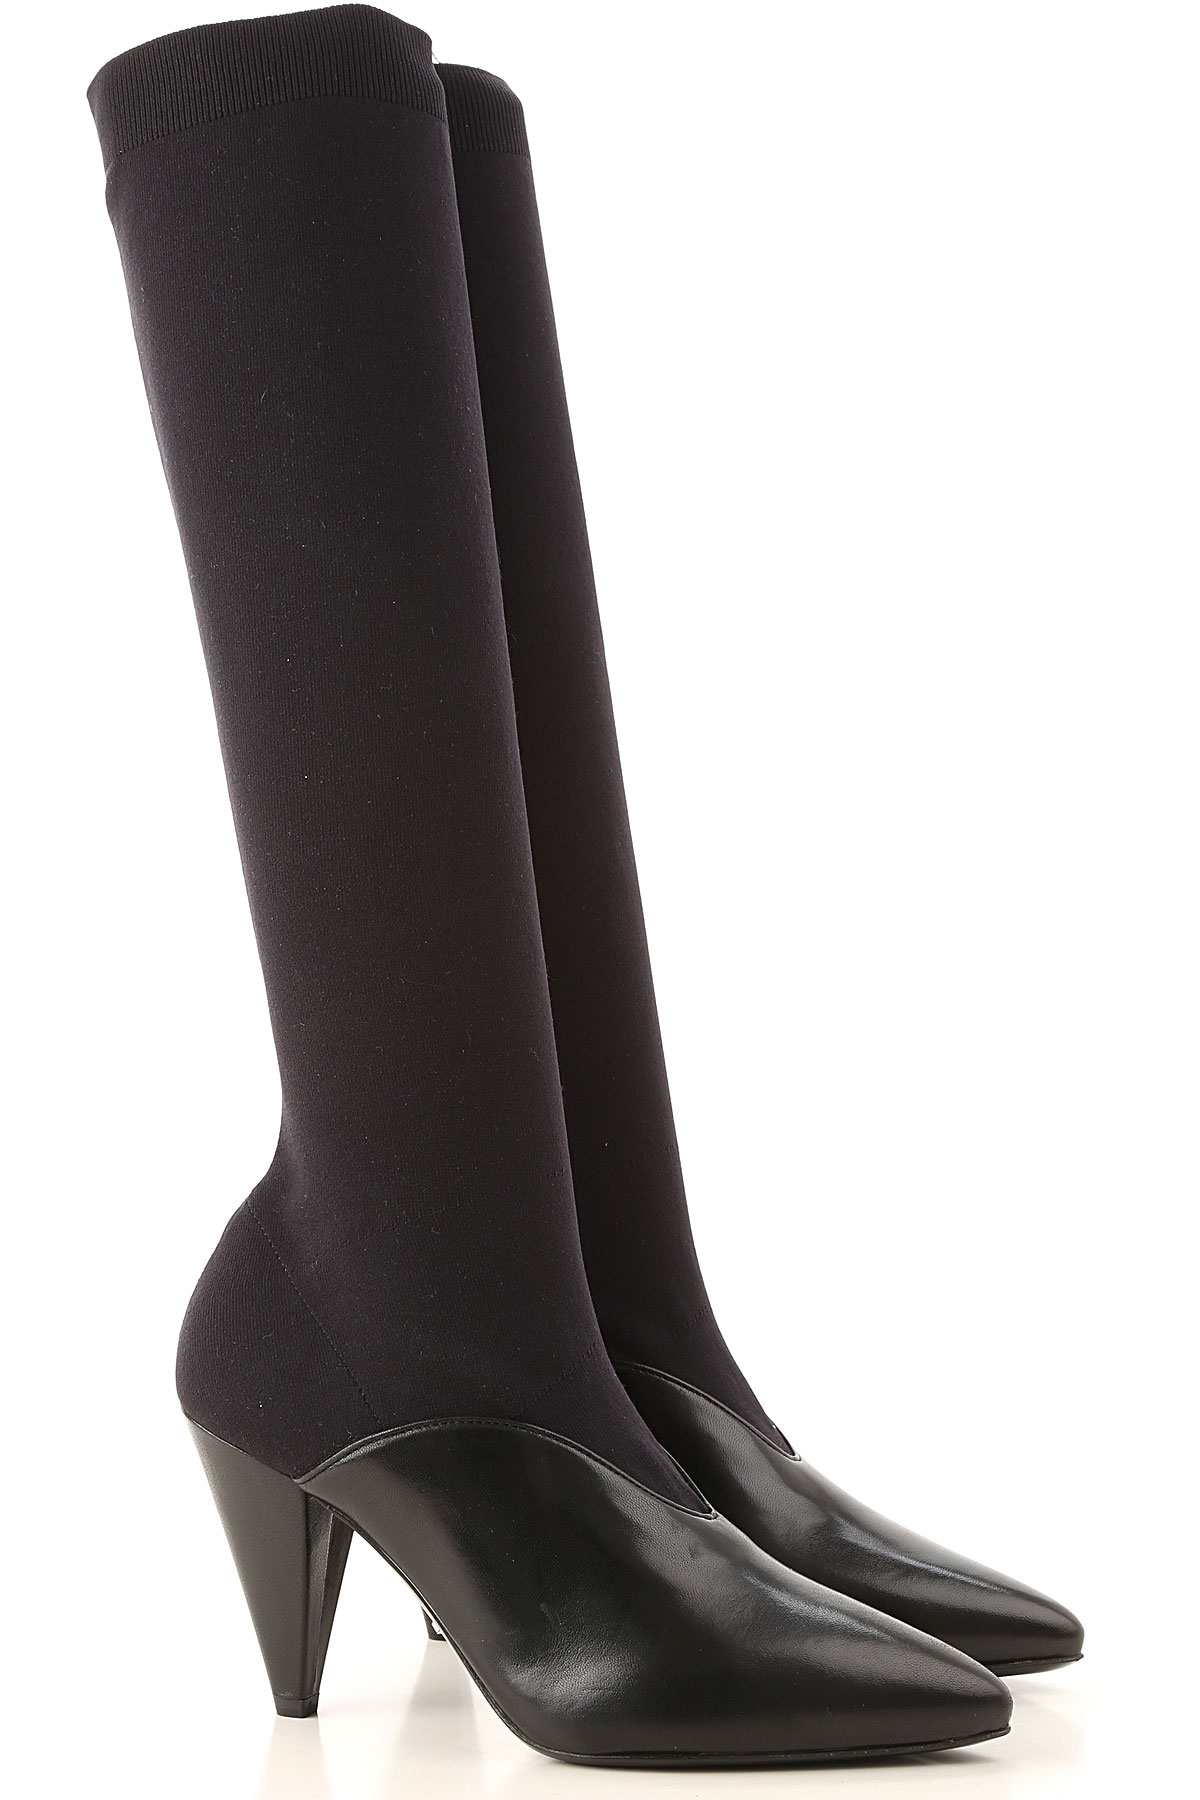 prada boots for women, booties on sale in outlet, black, leather, 2019, 5 5.5 6